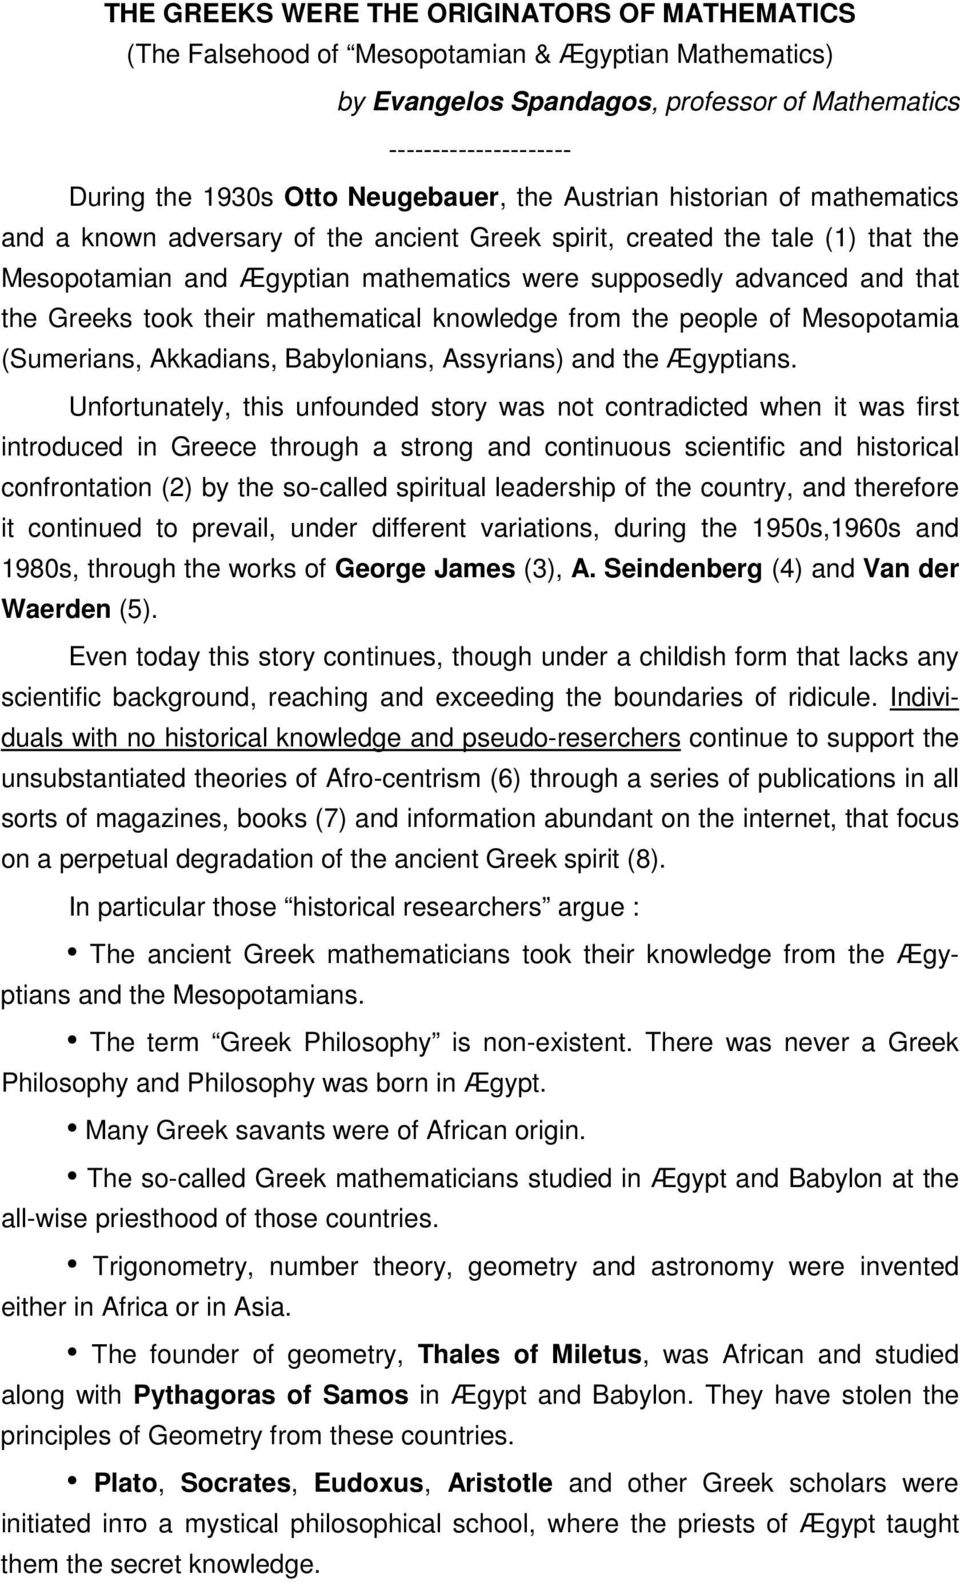 that the Greeks took their mathematical knowledge from the people of Mesopotamia (Sumerians, Akkadians, Babylonians, Assyrians) and the Ægyptians.